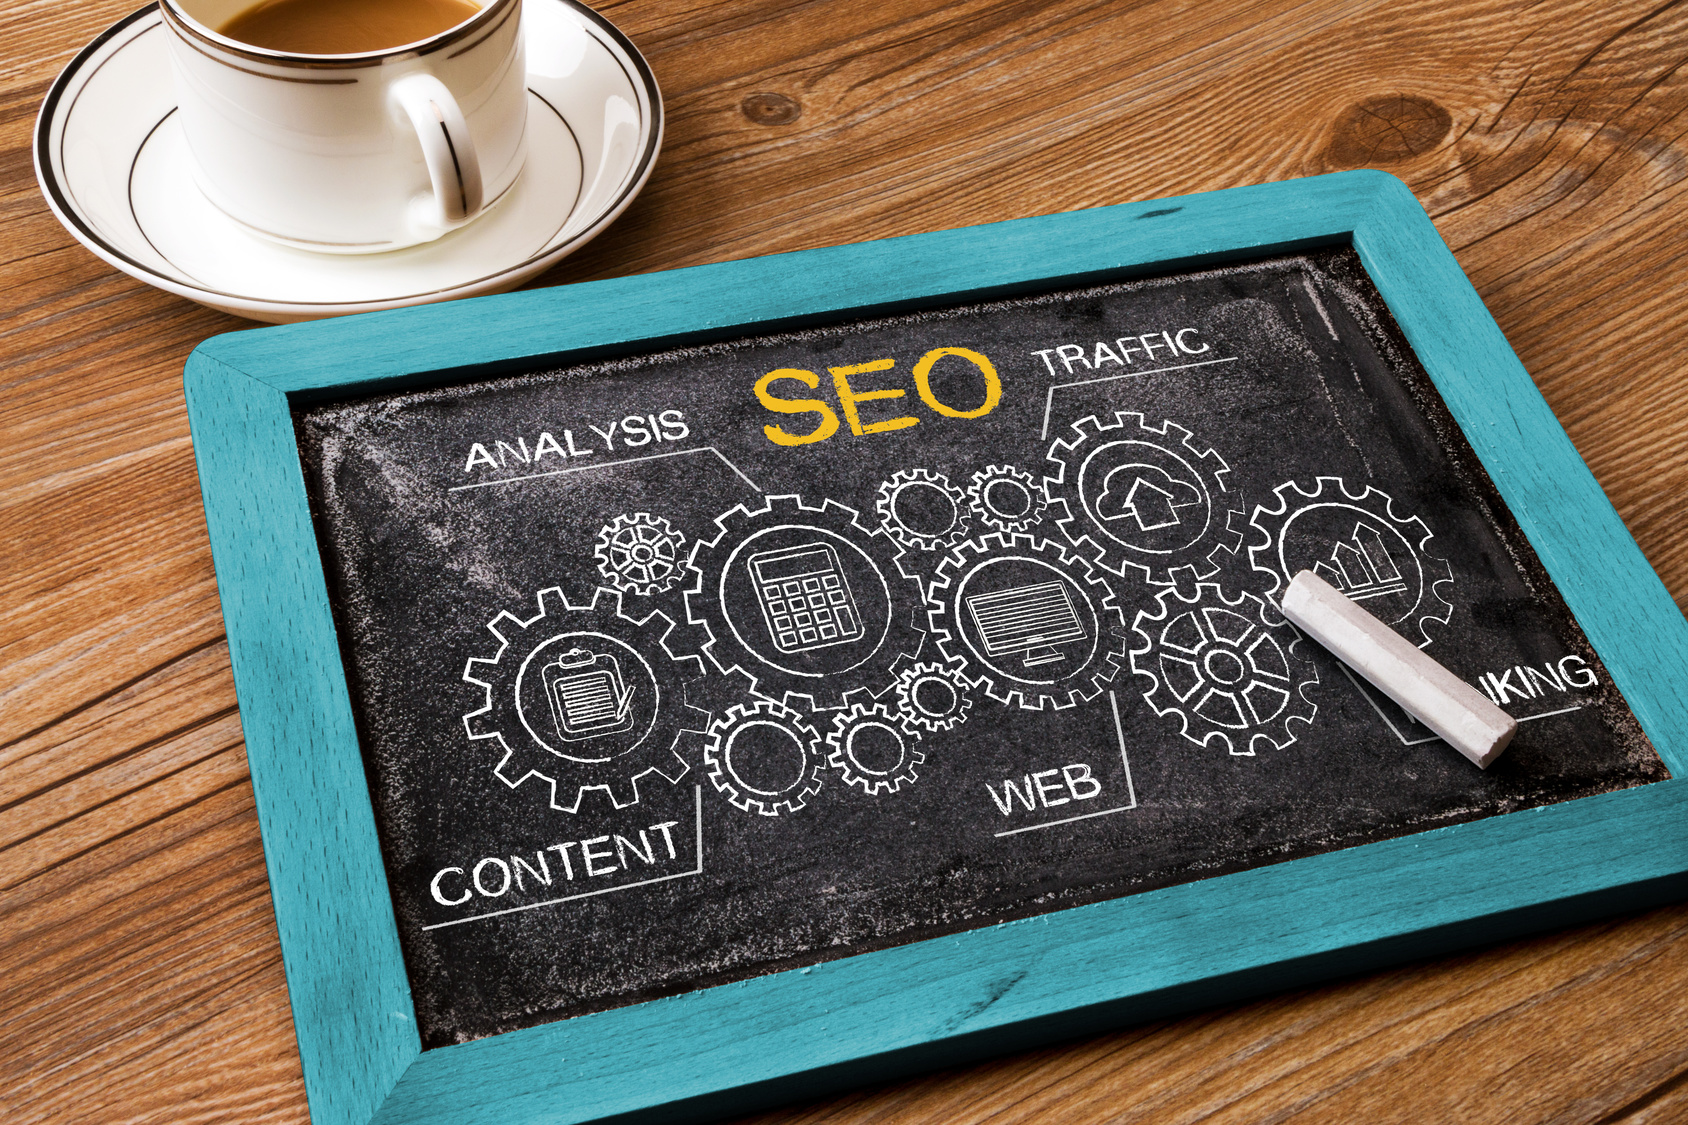 SEO For Dummies: How to Master Technical SEO to Improve Rankings